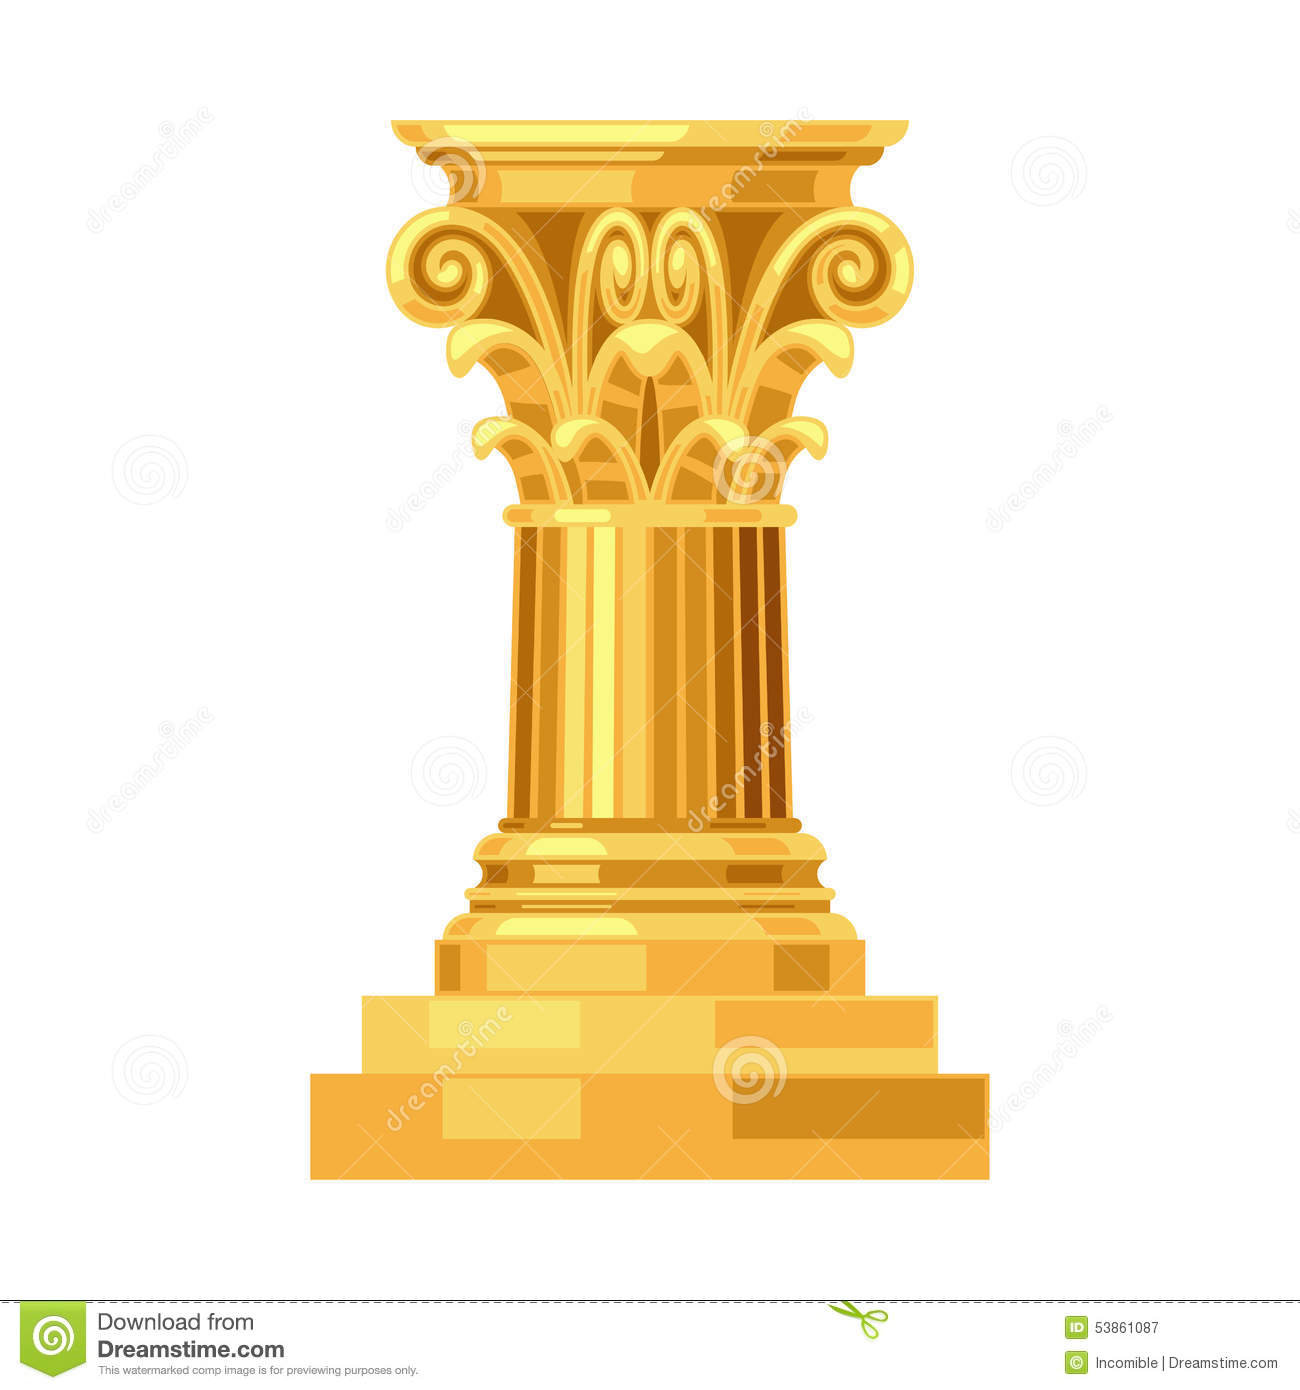 Corinthian realistic antique greek gold column Greek Columns Vector